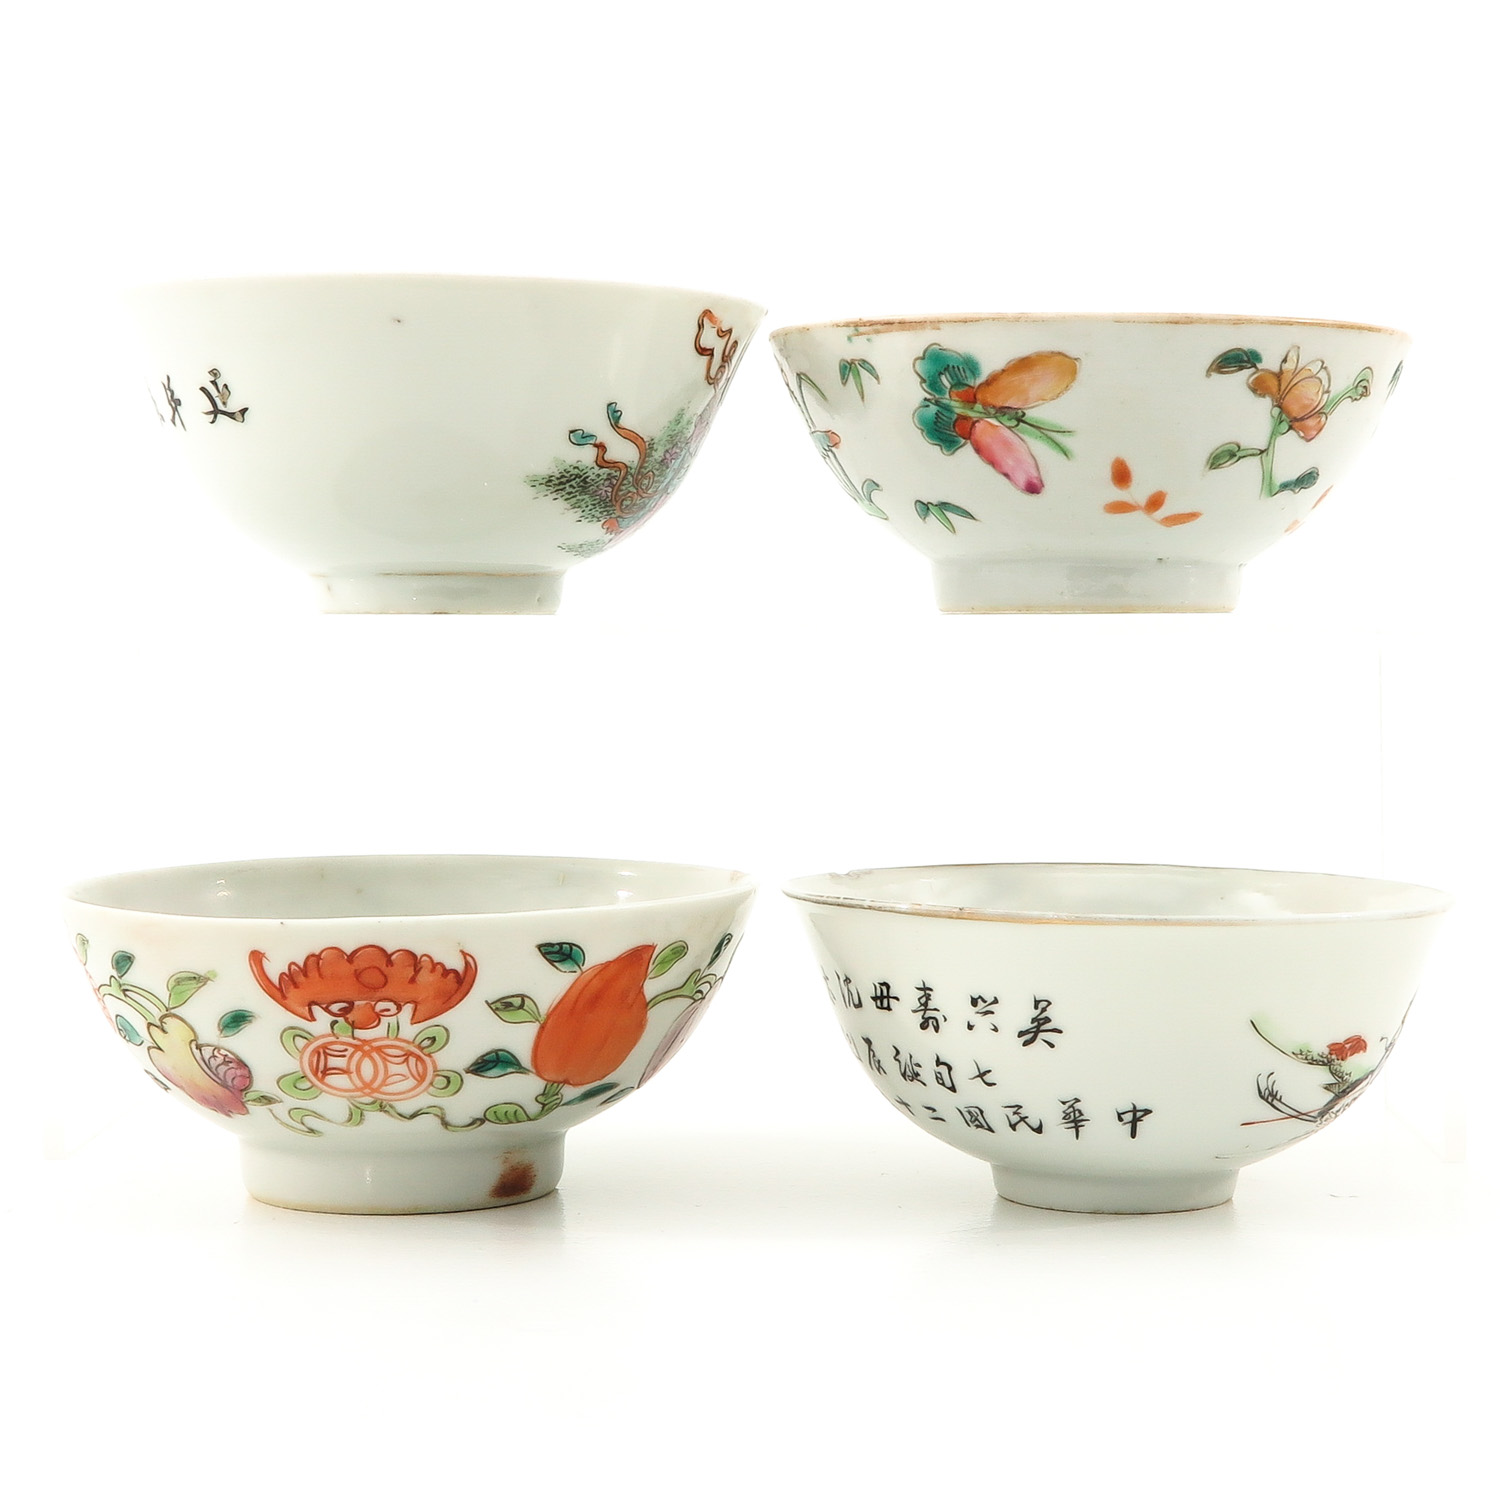 A Collection of 4 Polychrome Bowls - Image 4 of 10